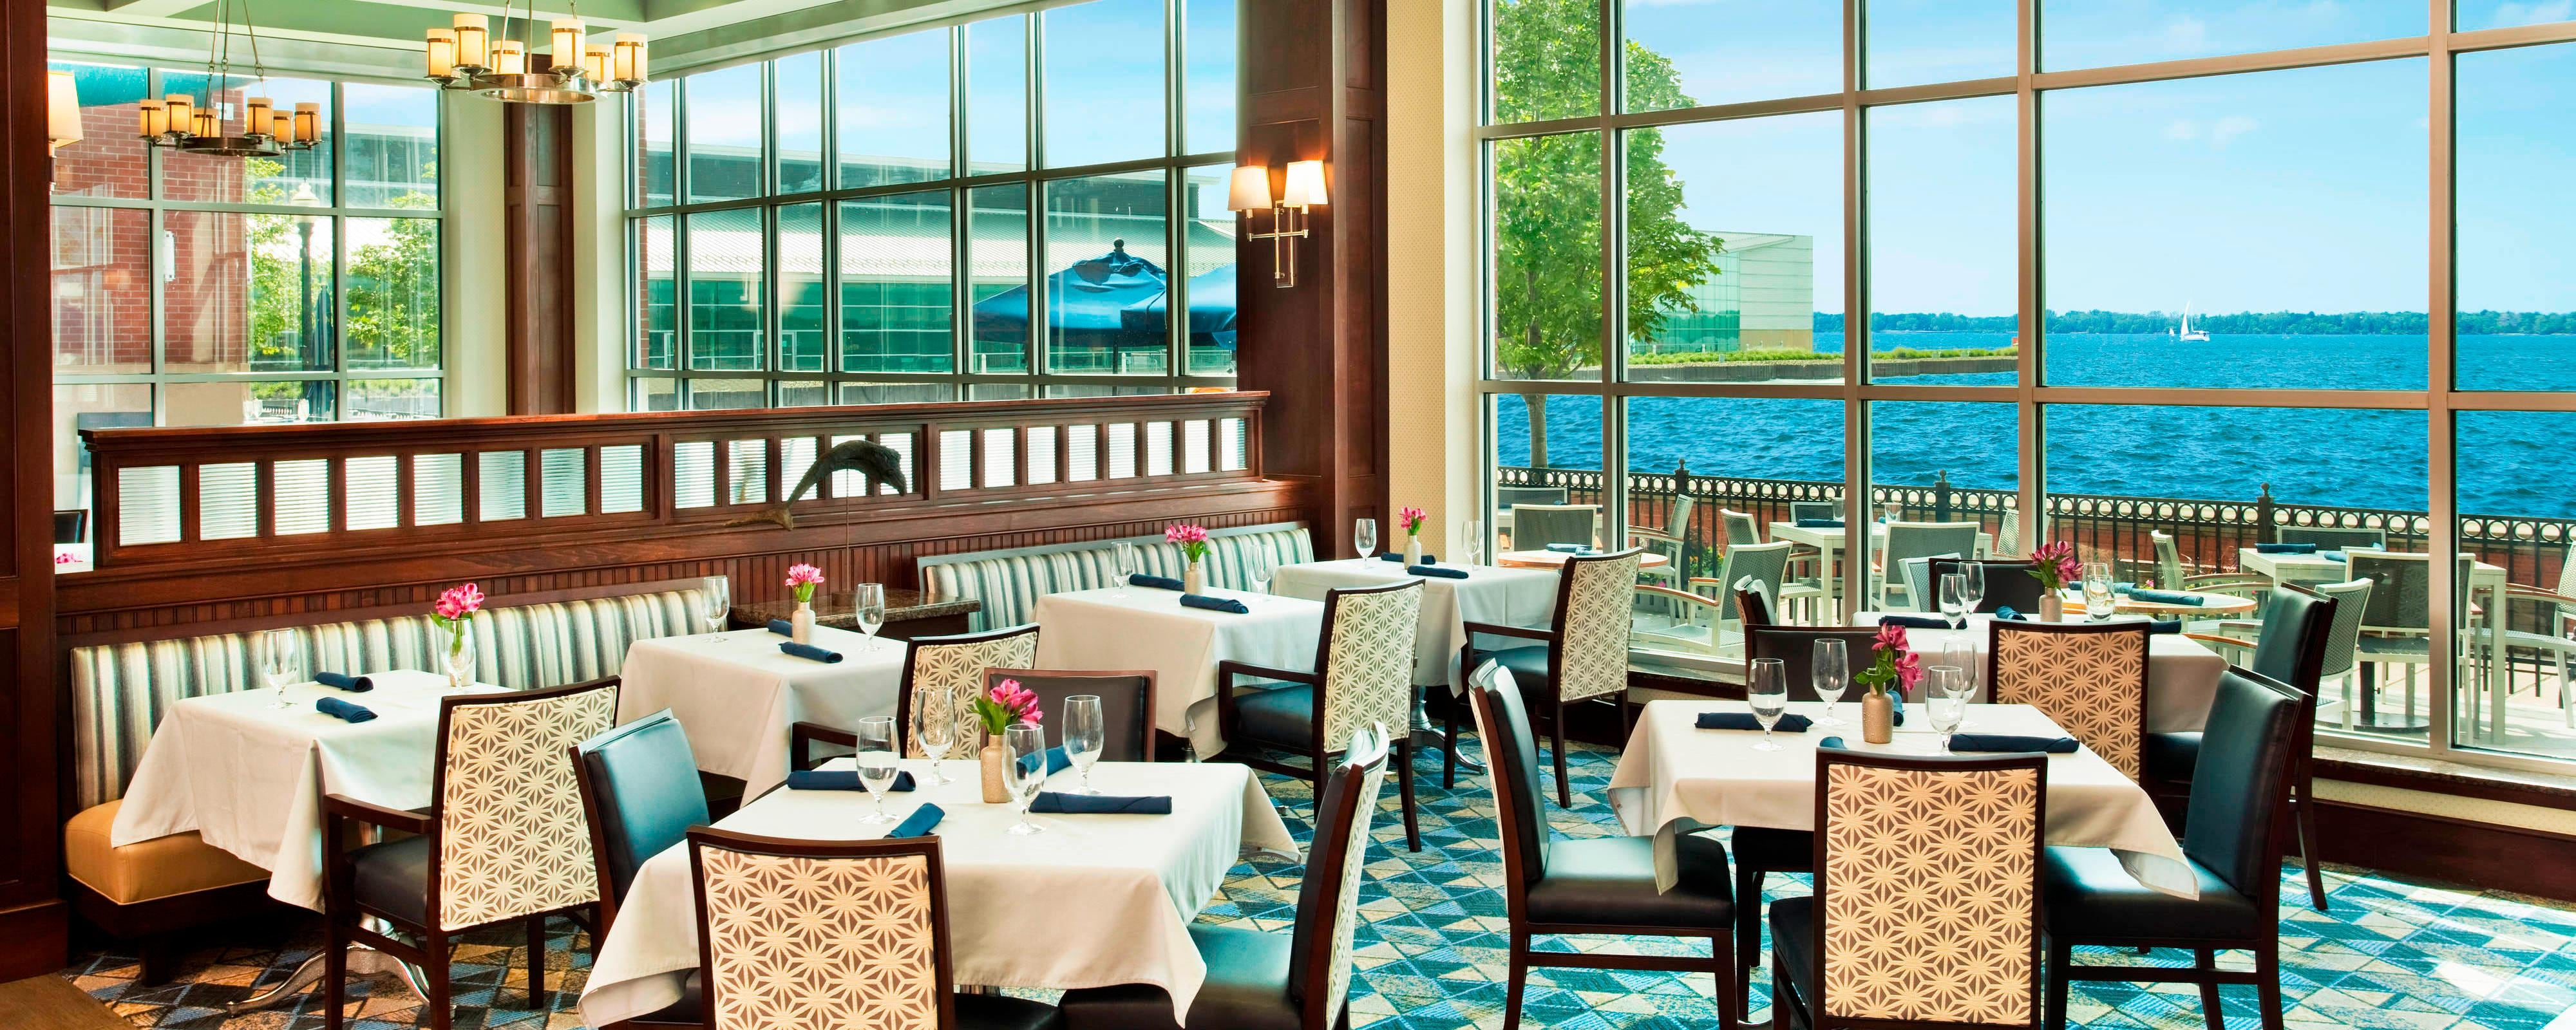 Erie Hotel Restaurants And Lounges Sheraton Erie Bayfront Hotel